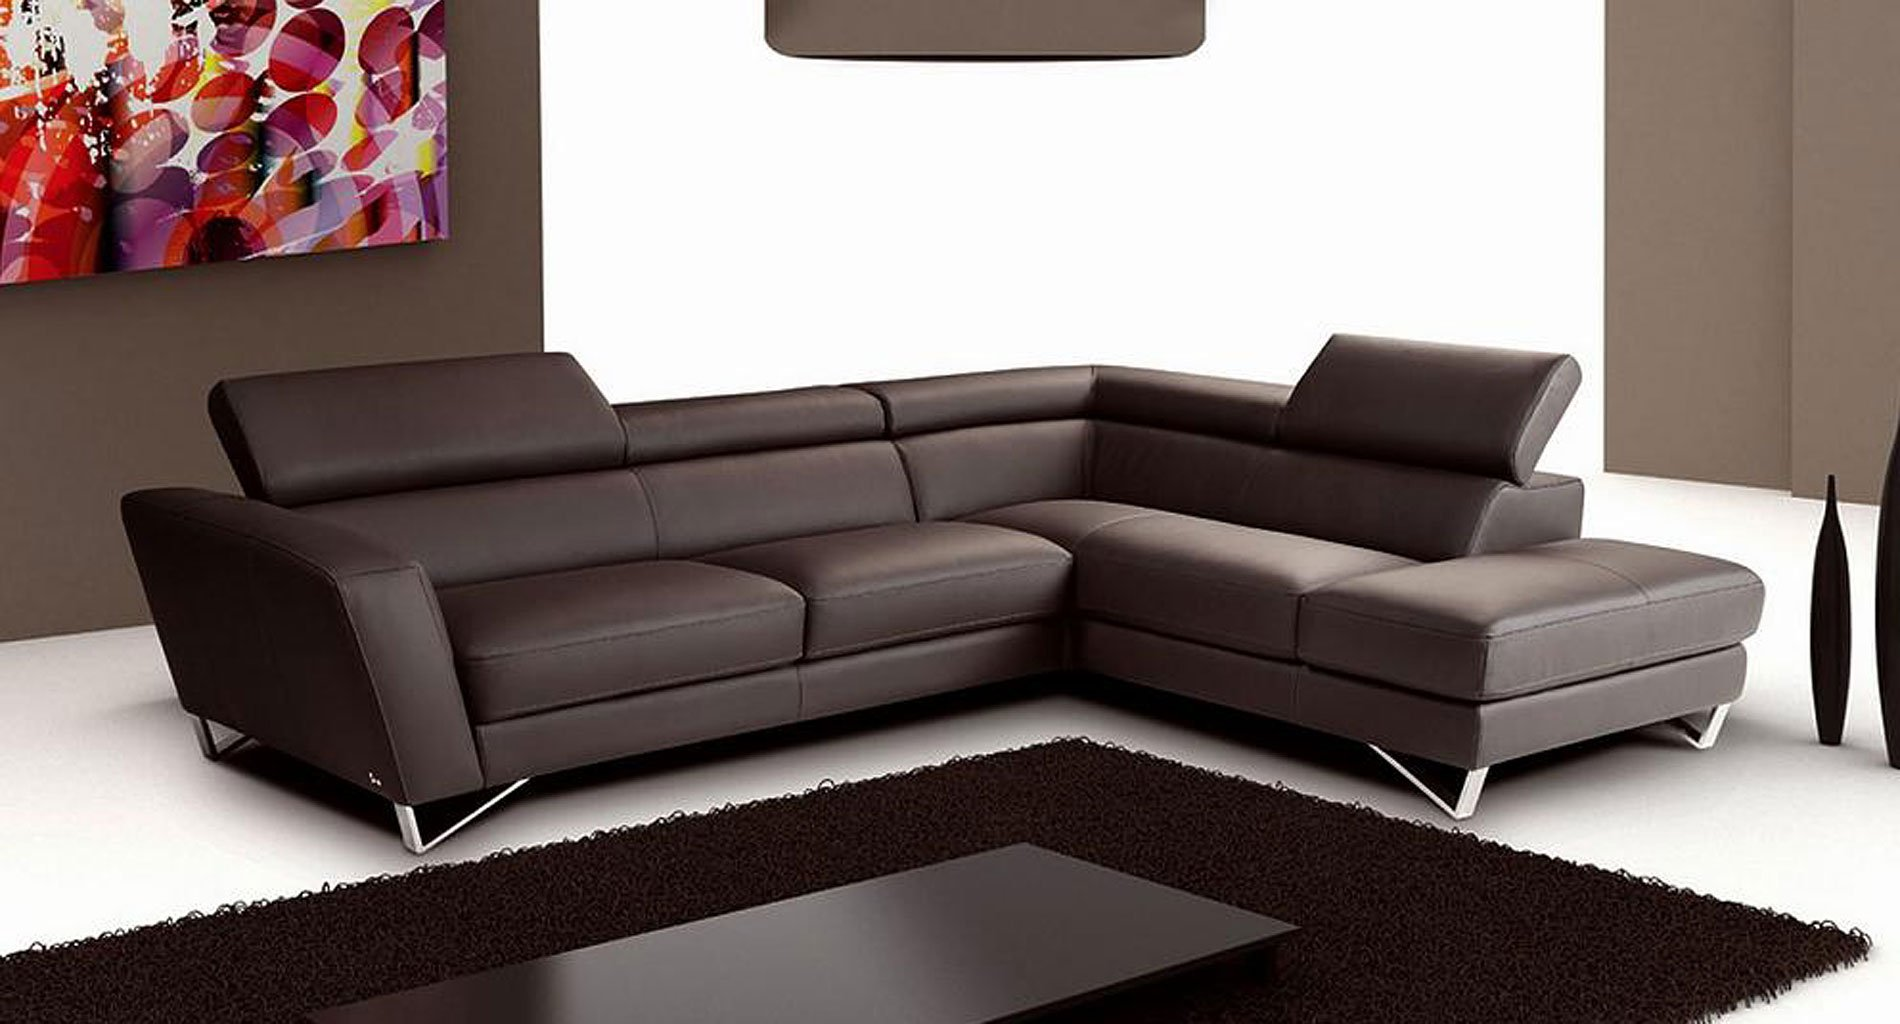 Sparta Leather Right Chaise Sectional (Chocolate) JM ... on Sparta Outdoor Living id=89059